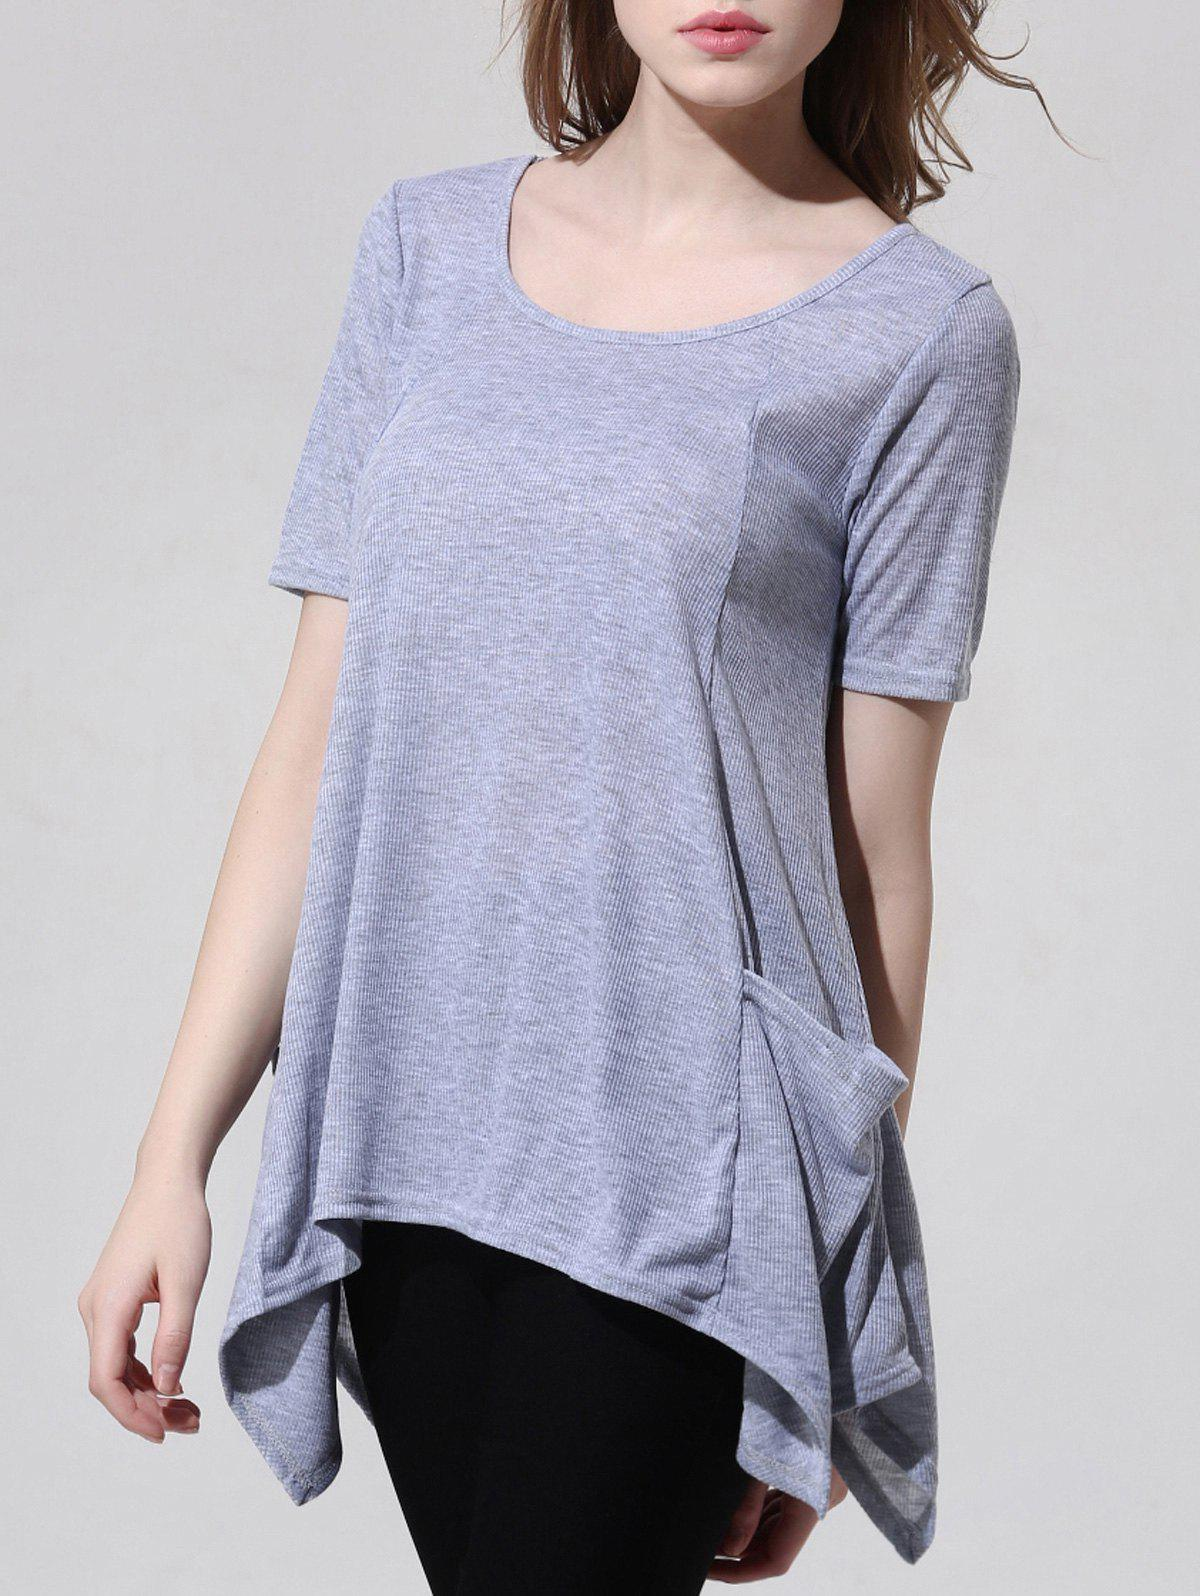 Fashionable Scoop Neck Asymmetric Gray T-Shirt For Women - GRAY XL